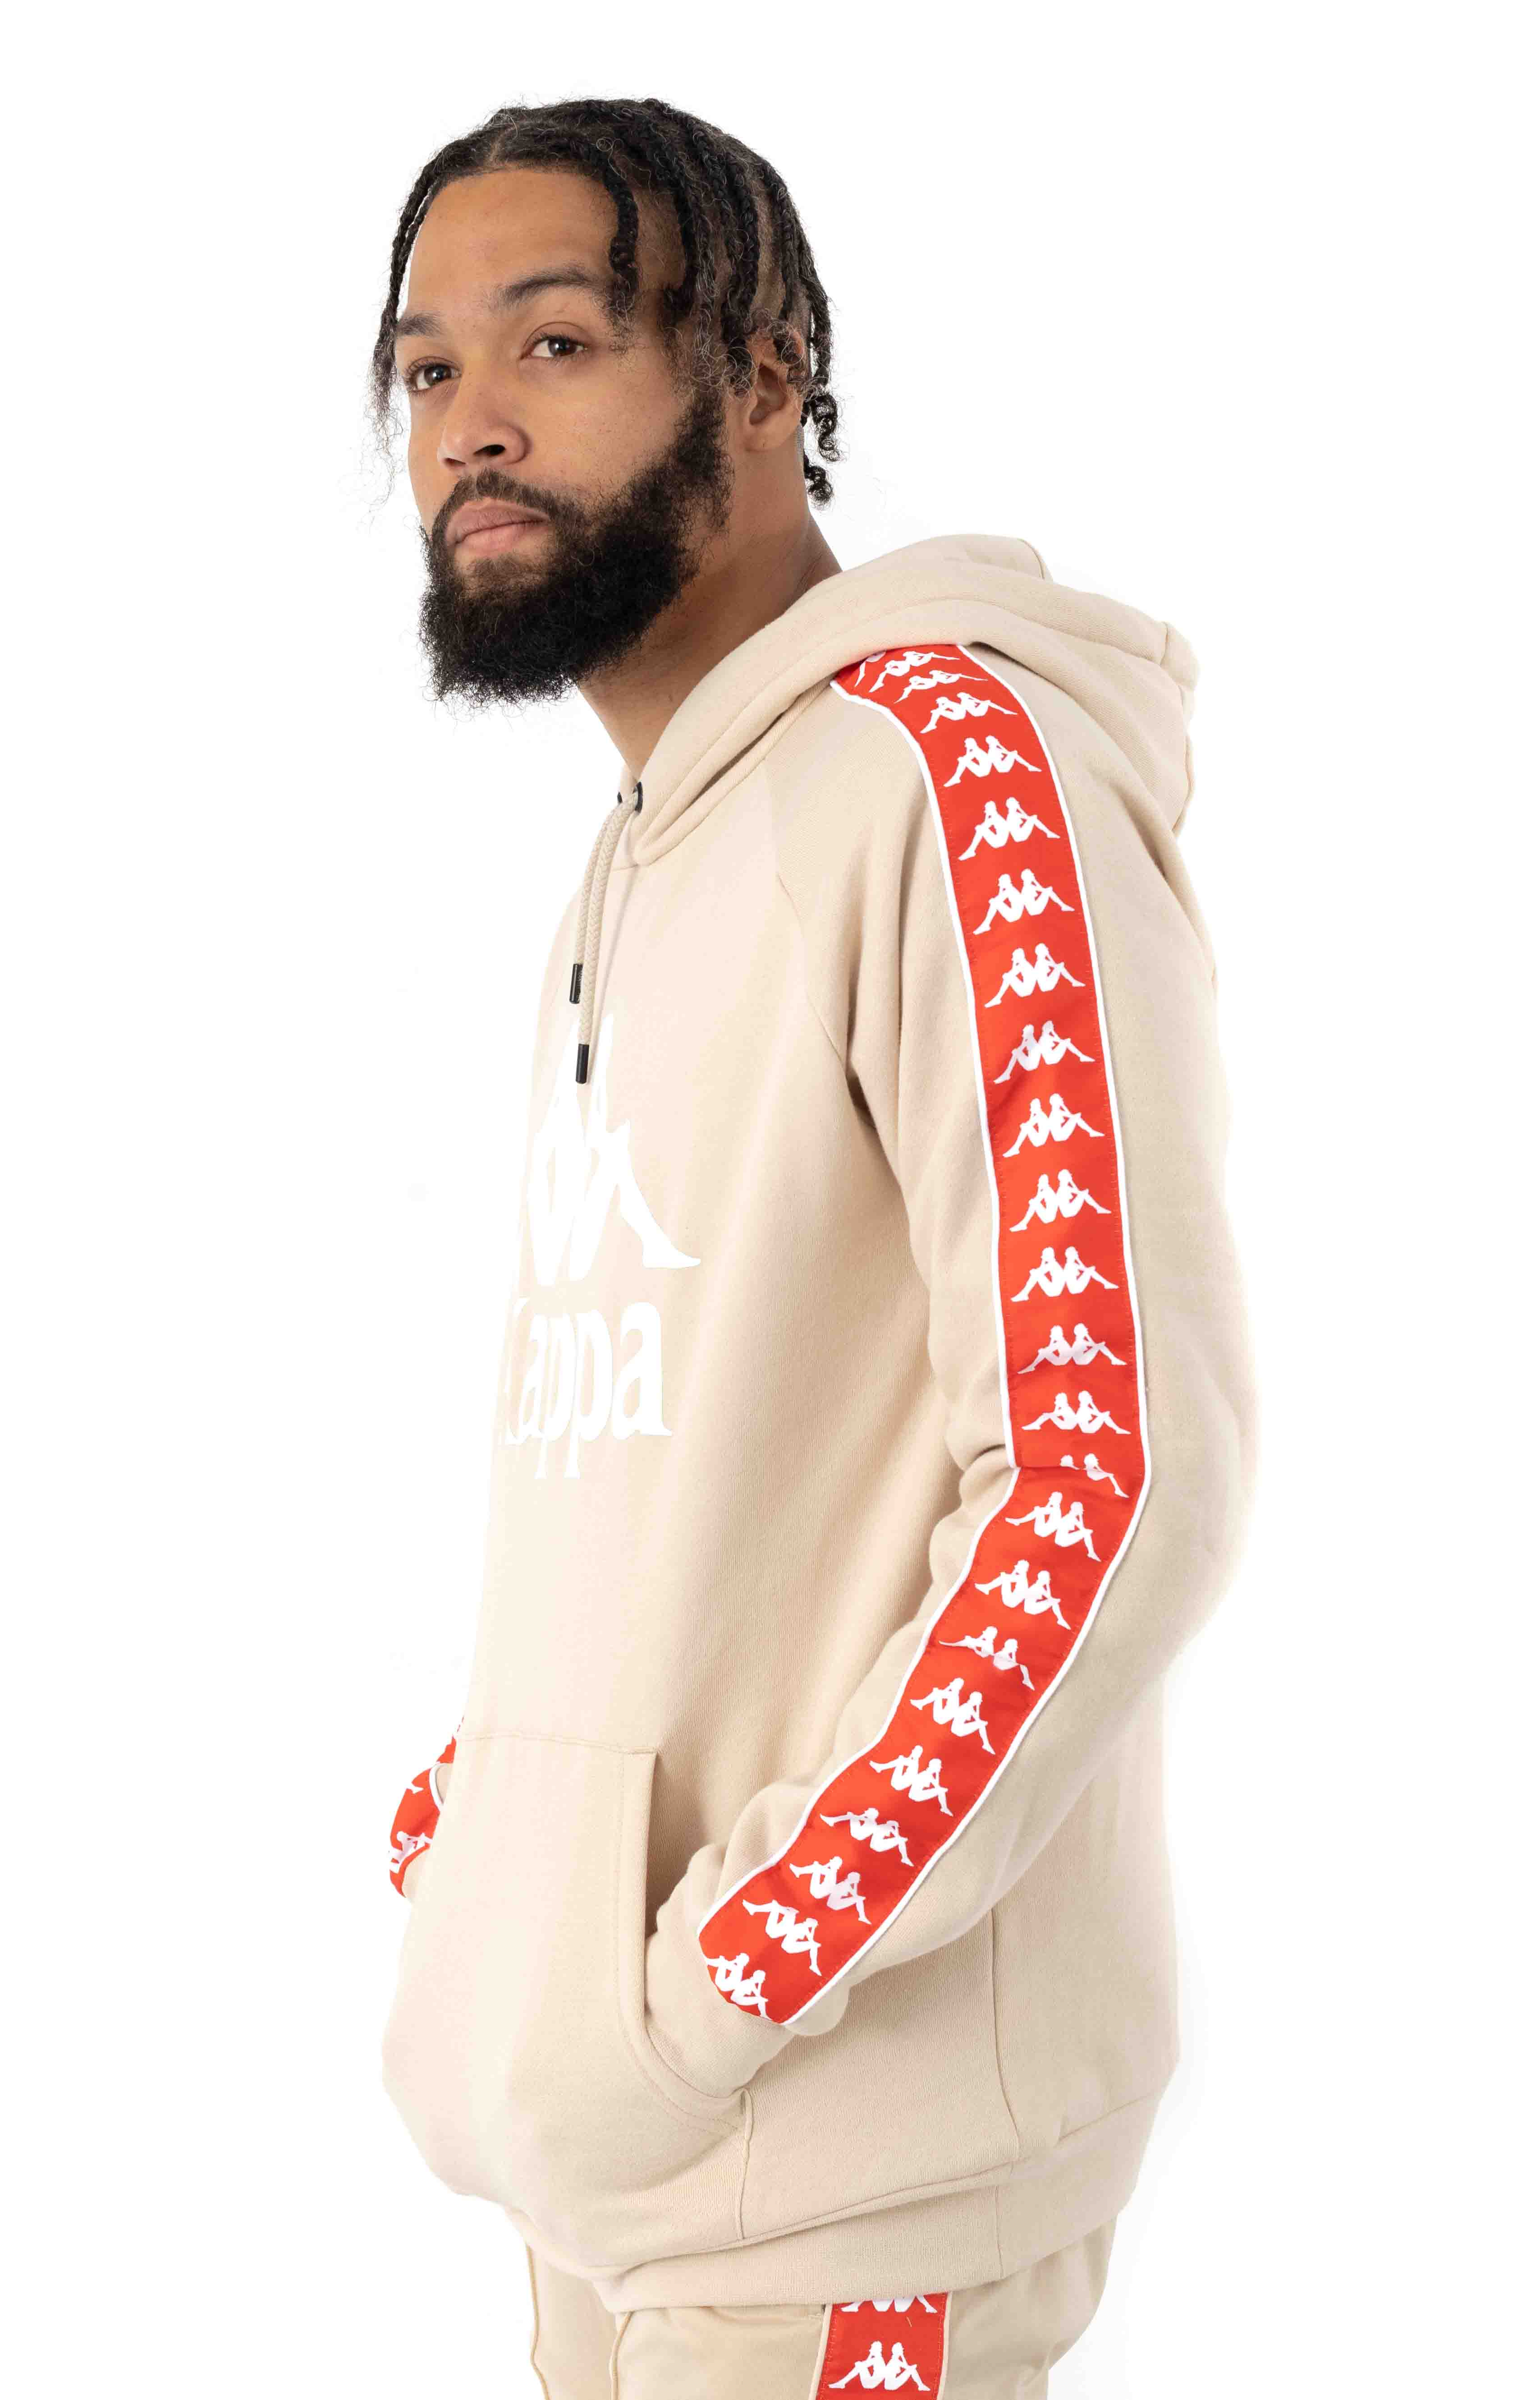 222 Banda Authentic Hurtado 2 Pullover Hoodie - Beige/Orange 2